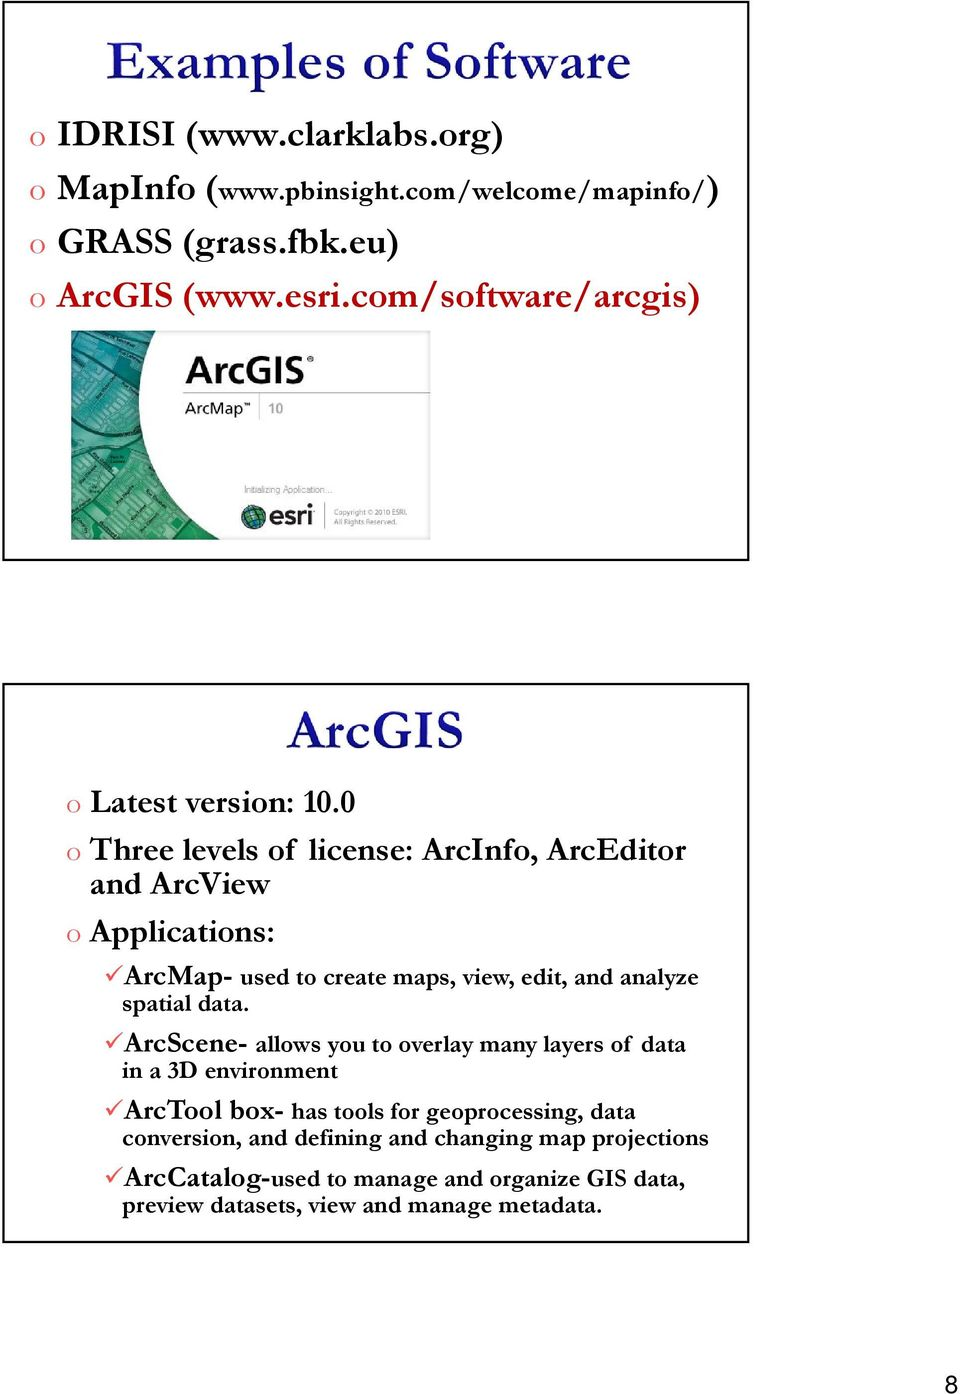 A GIS helps you answer questions and solve problems by looking at